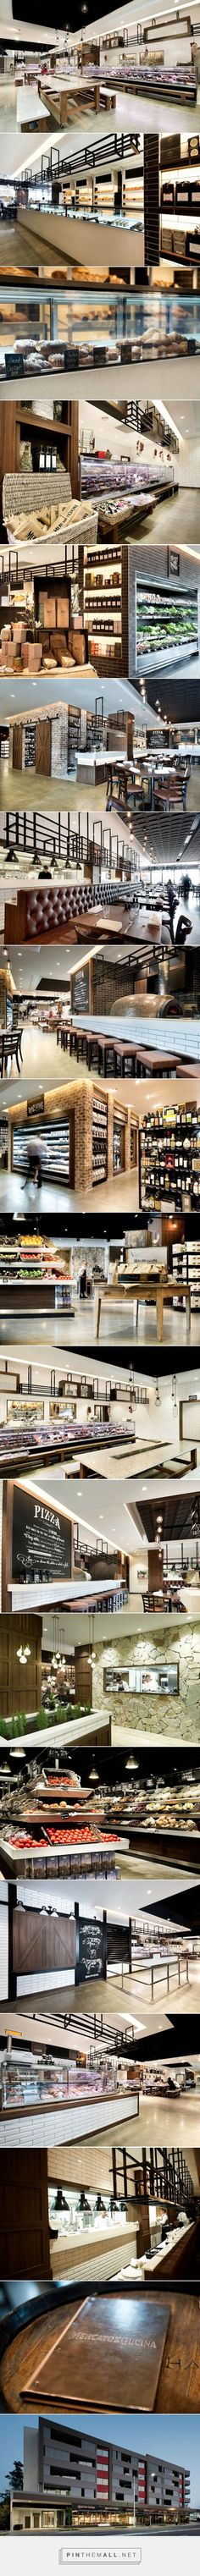 Mercato e Cucina by Mima Design, Sydney – Australia »  Retail Design Blog - created via https://pinthemall.net